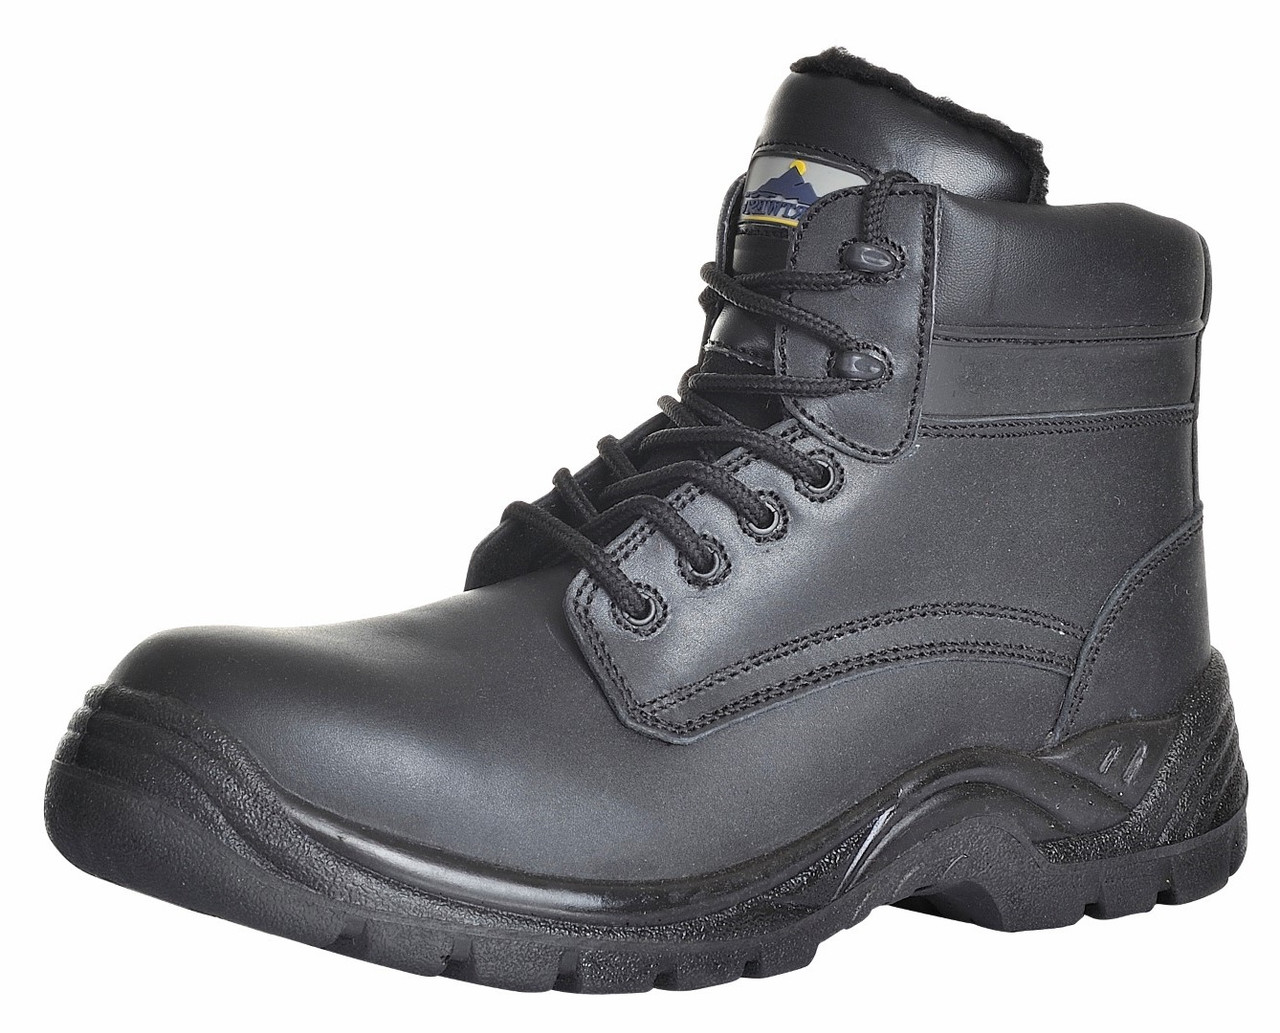 8082411c09c848 Portwest Workwear Mens Fur Lined Thor Boot S3 38 5 - ABM Workwear